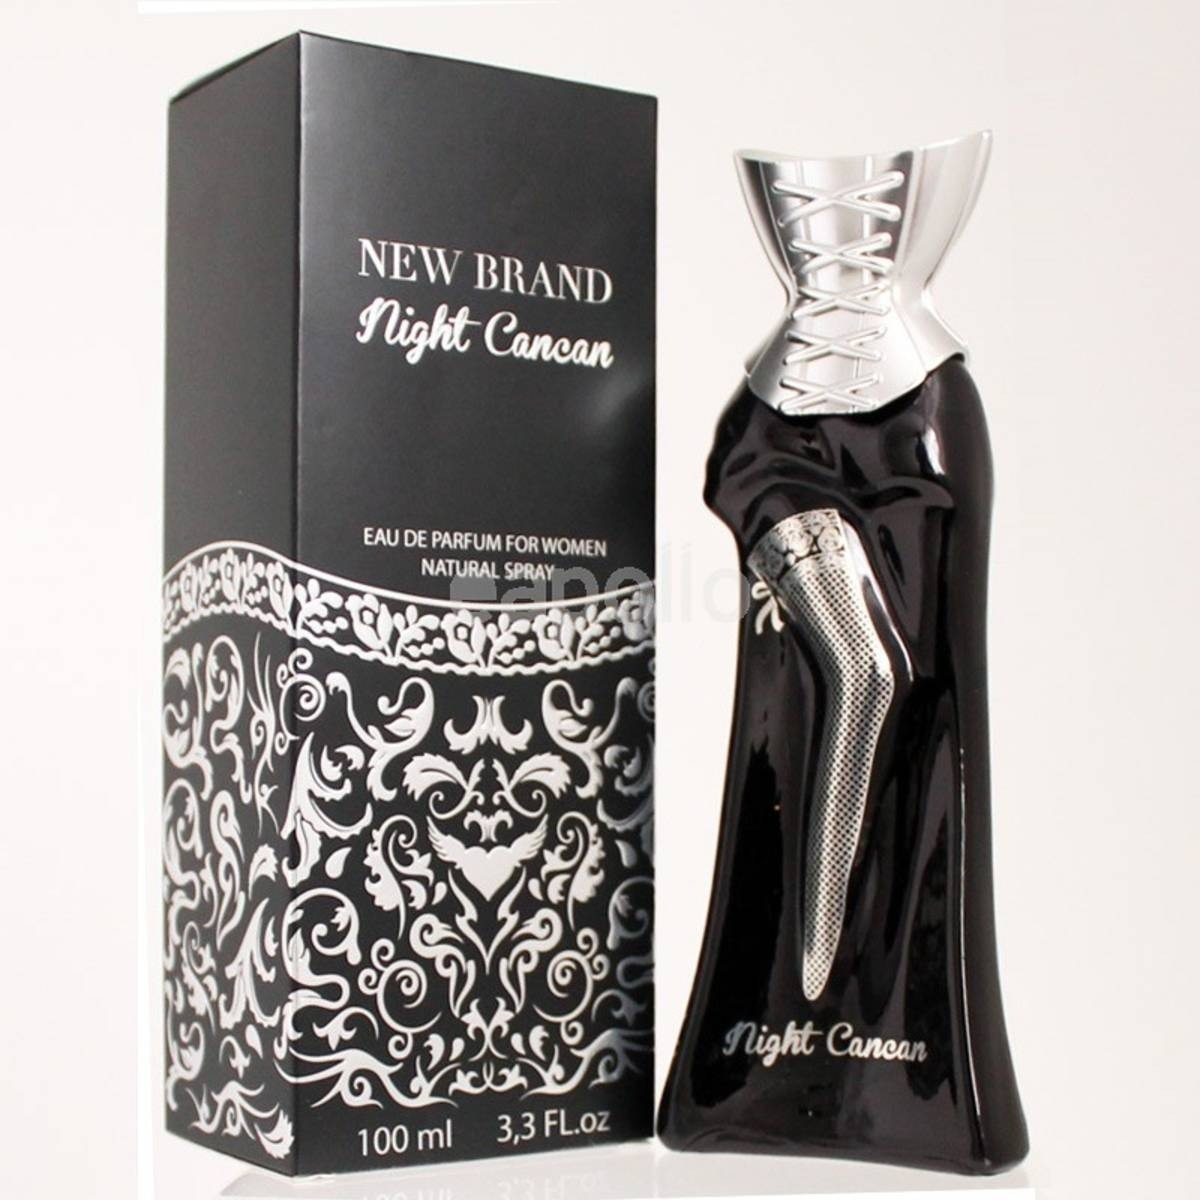 c5f4d8b67 Kit 3 Perfumes New Brand Cancan- French,candy,night - Oferta - R ...